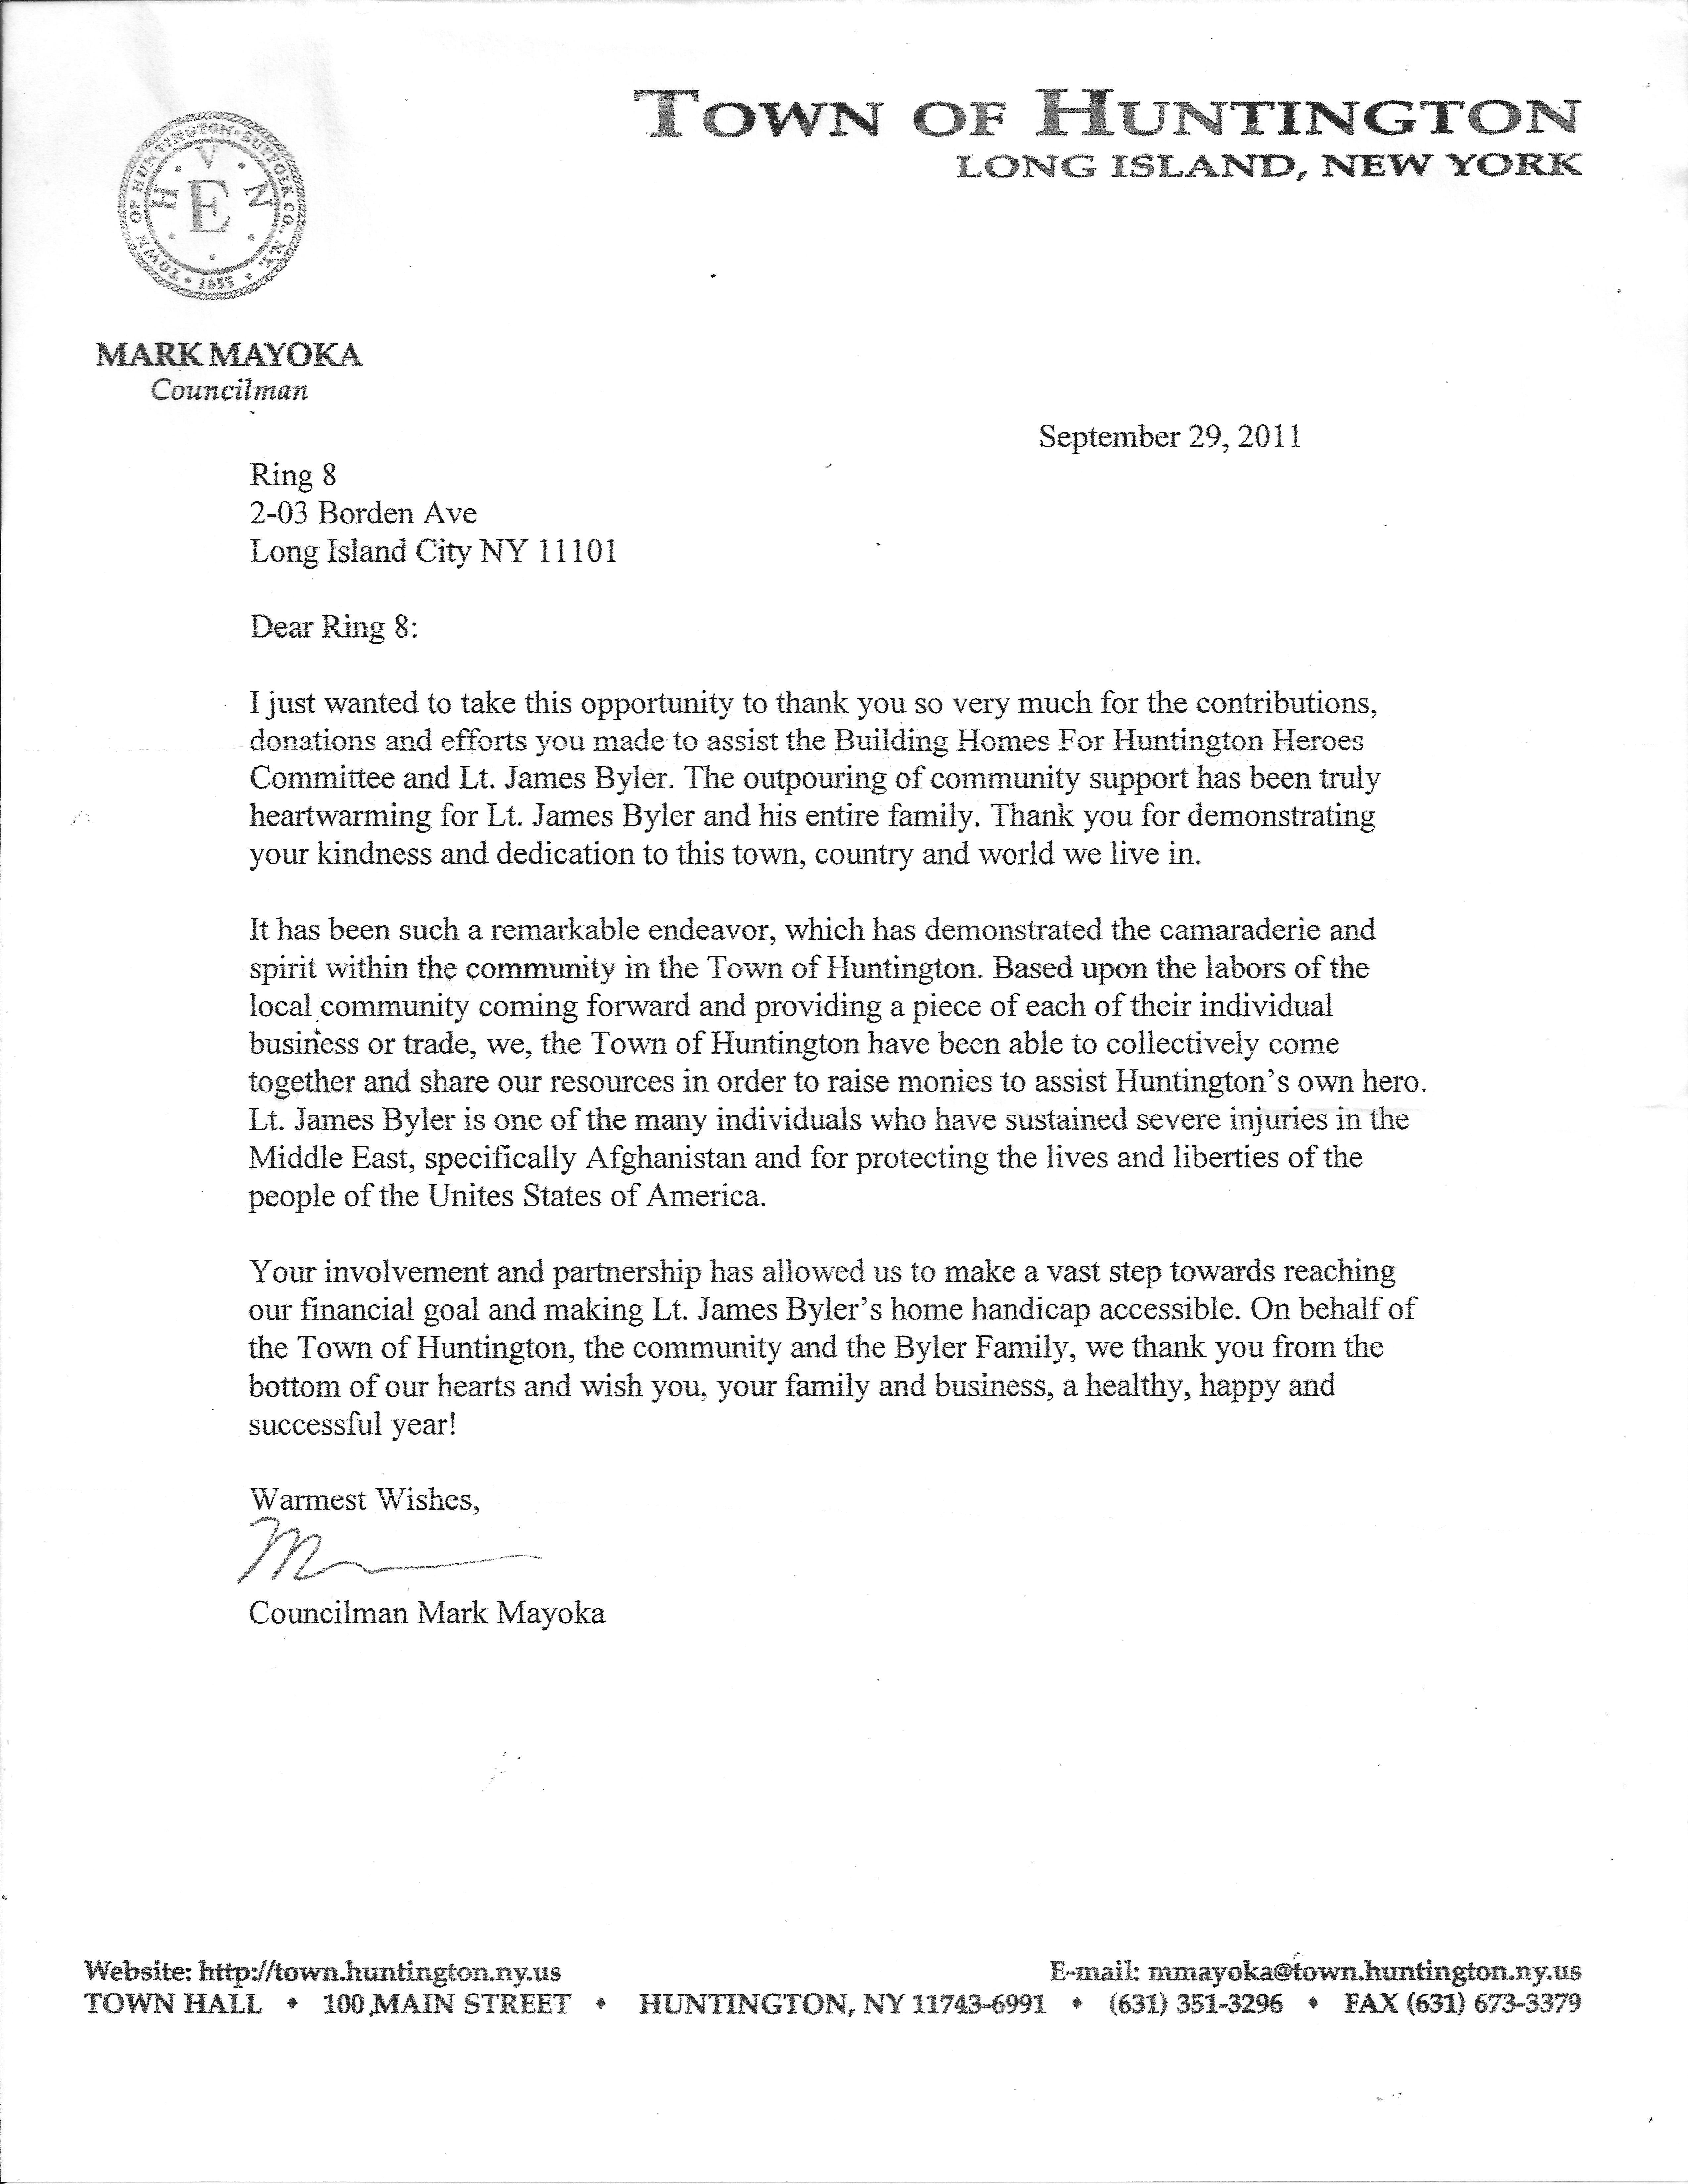 Blog archive thank you letter from the town of huntington thank you letter from the town of huntington posted under uncategorized altavistaventures Image collections